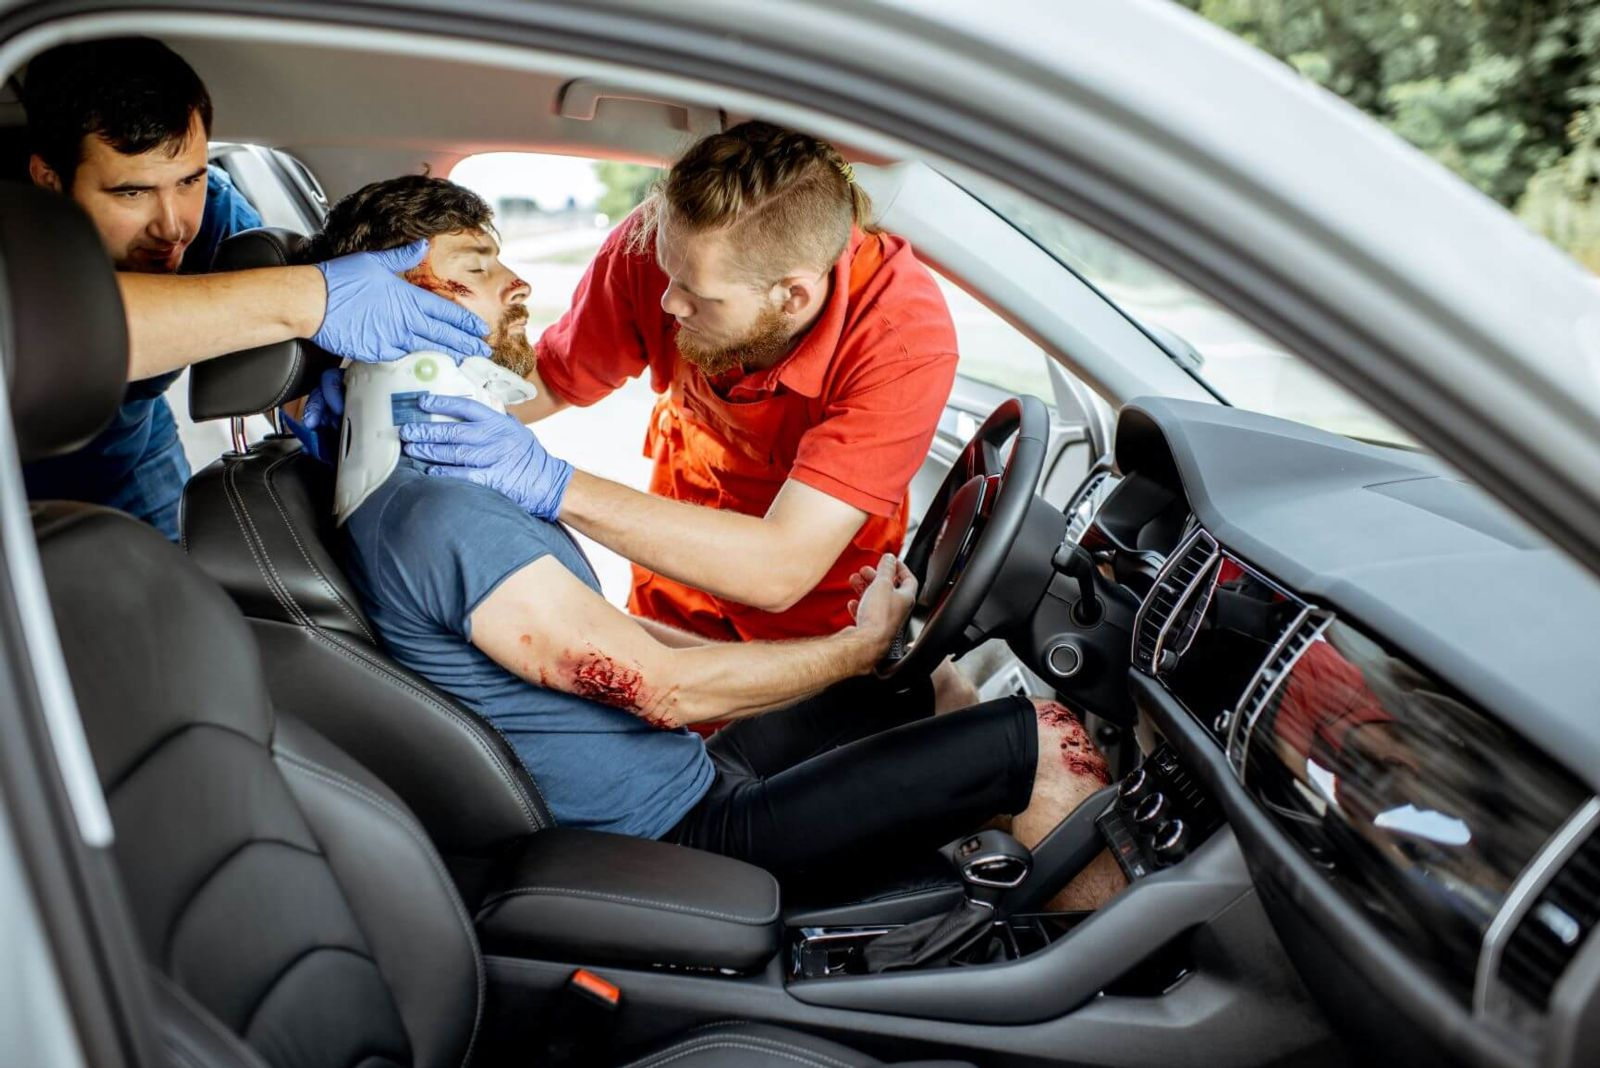 Can a Car Accident Exacerbate an Old Injury